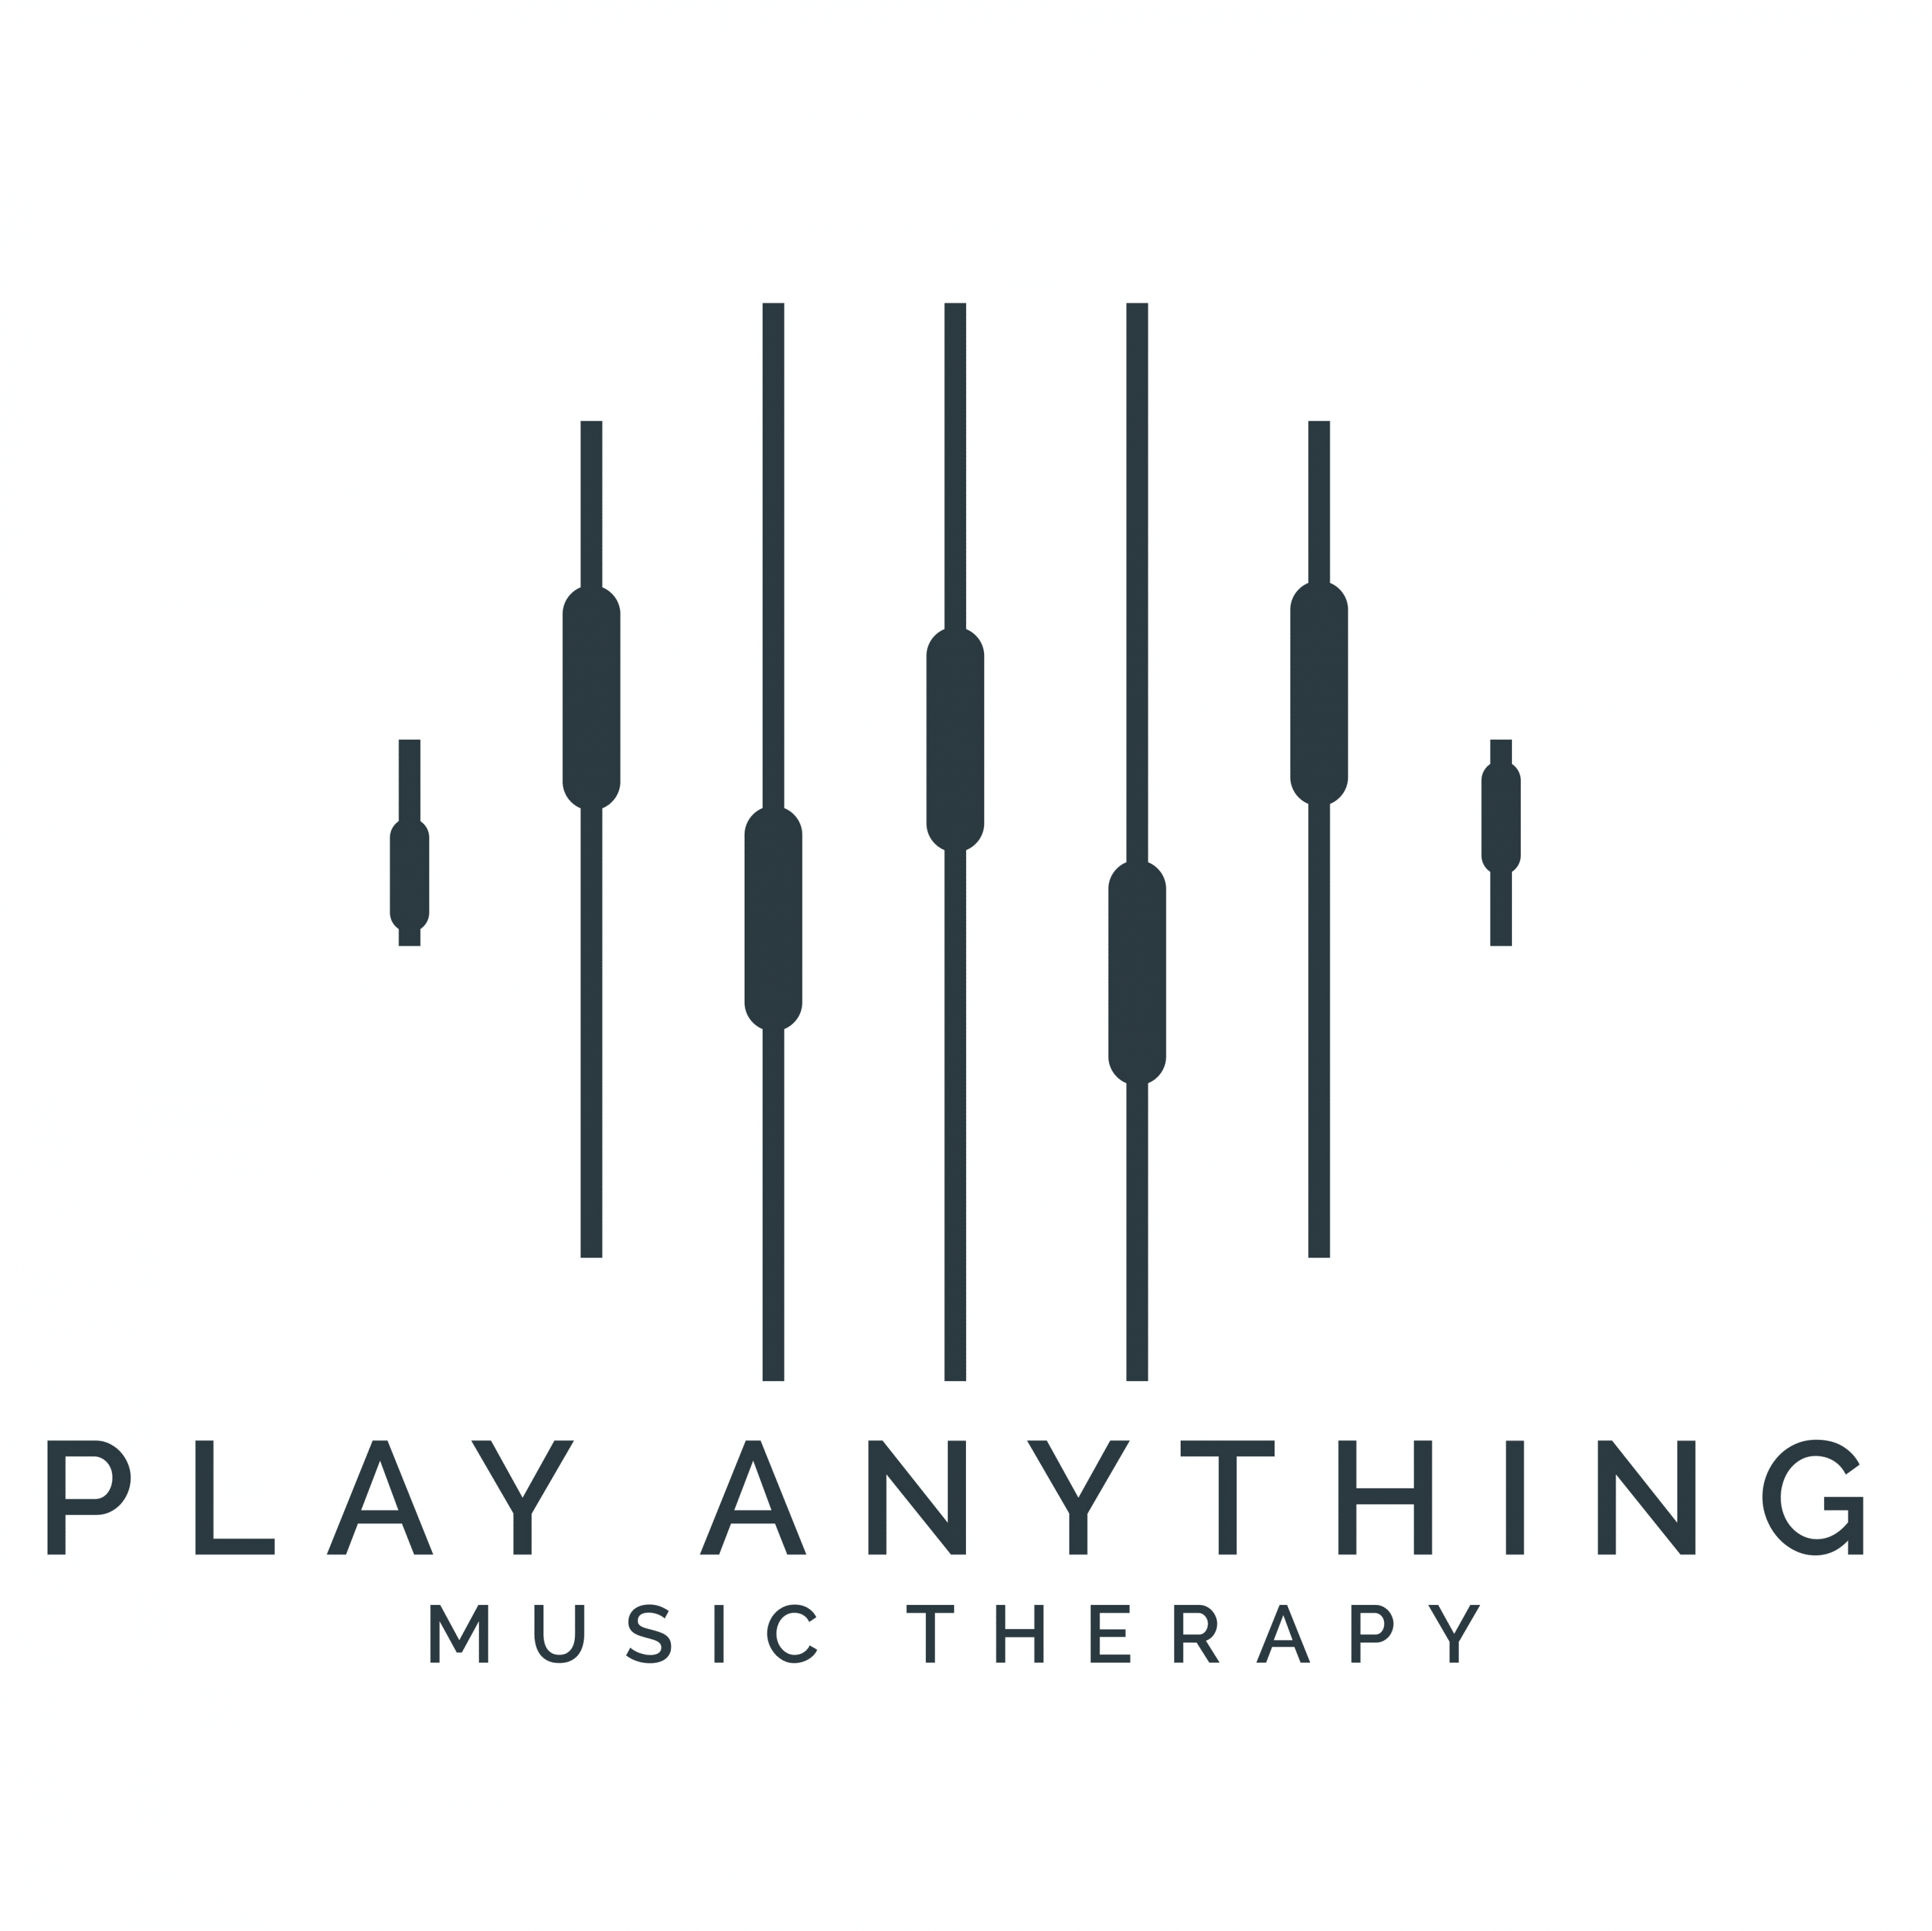 Play anything music therapy LOGO